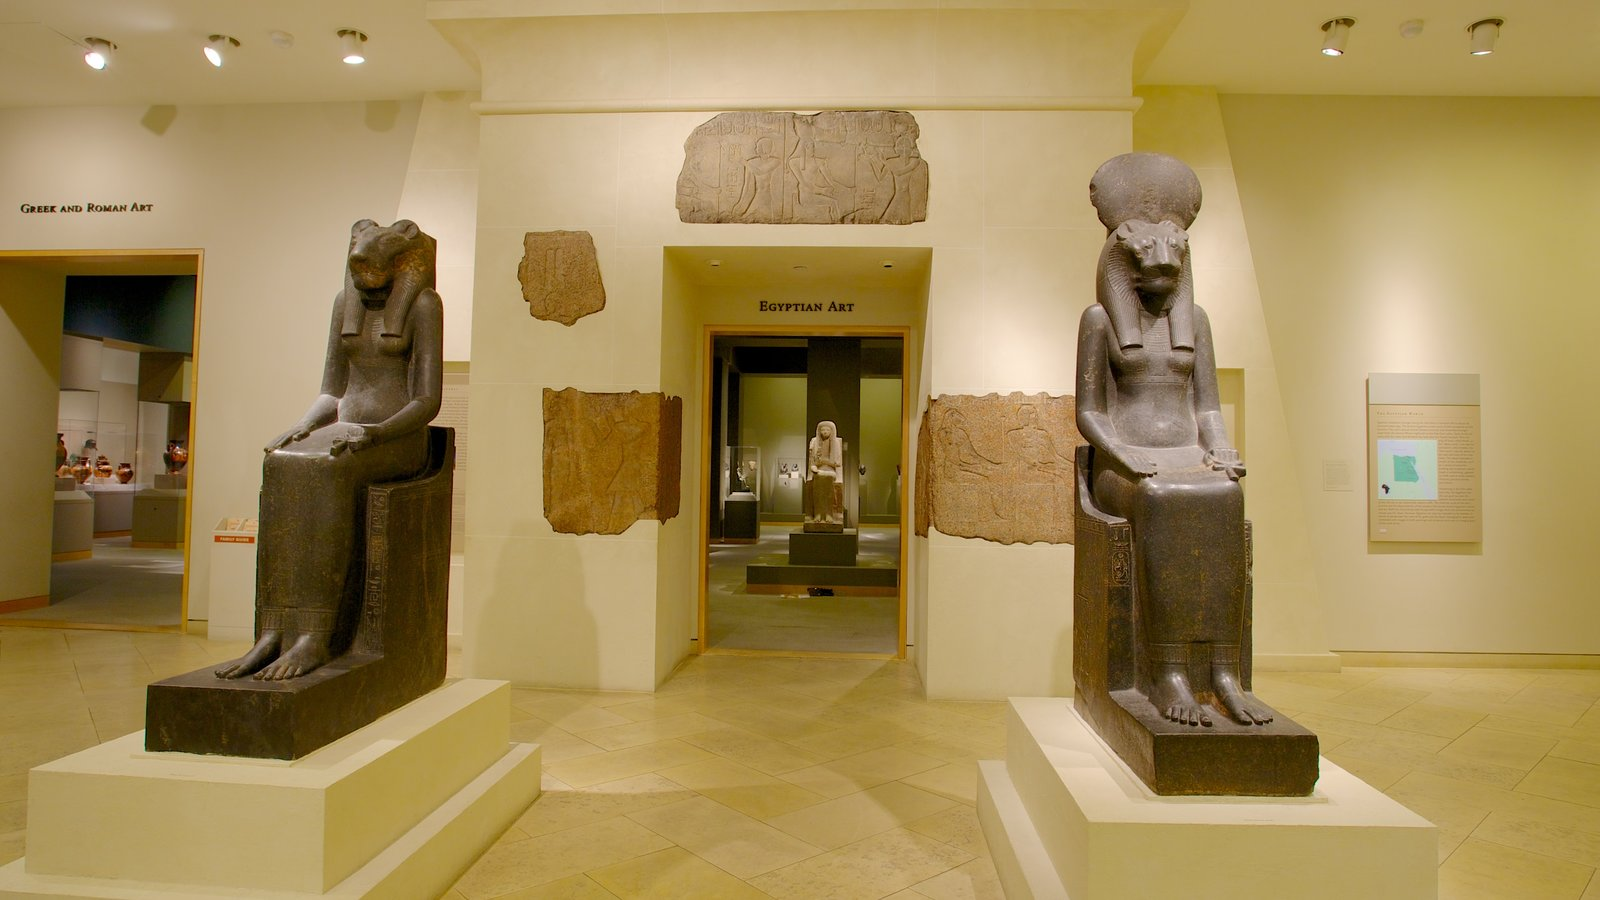 Walters Art  Museum which includes interior views, a statue or sculpture and art